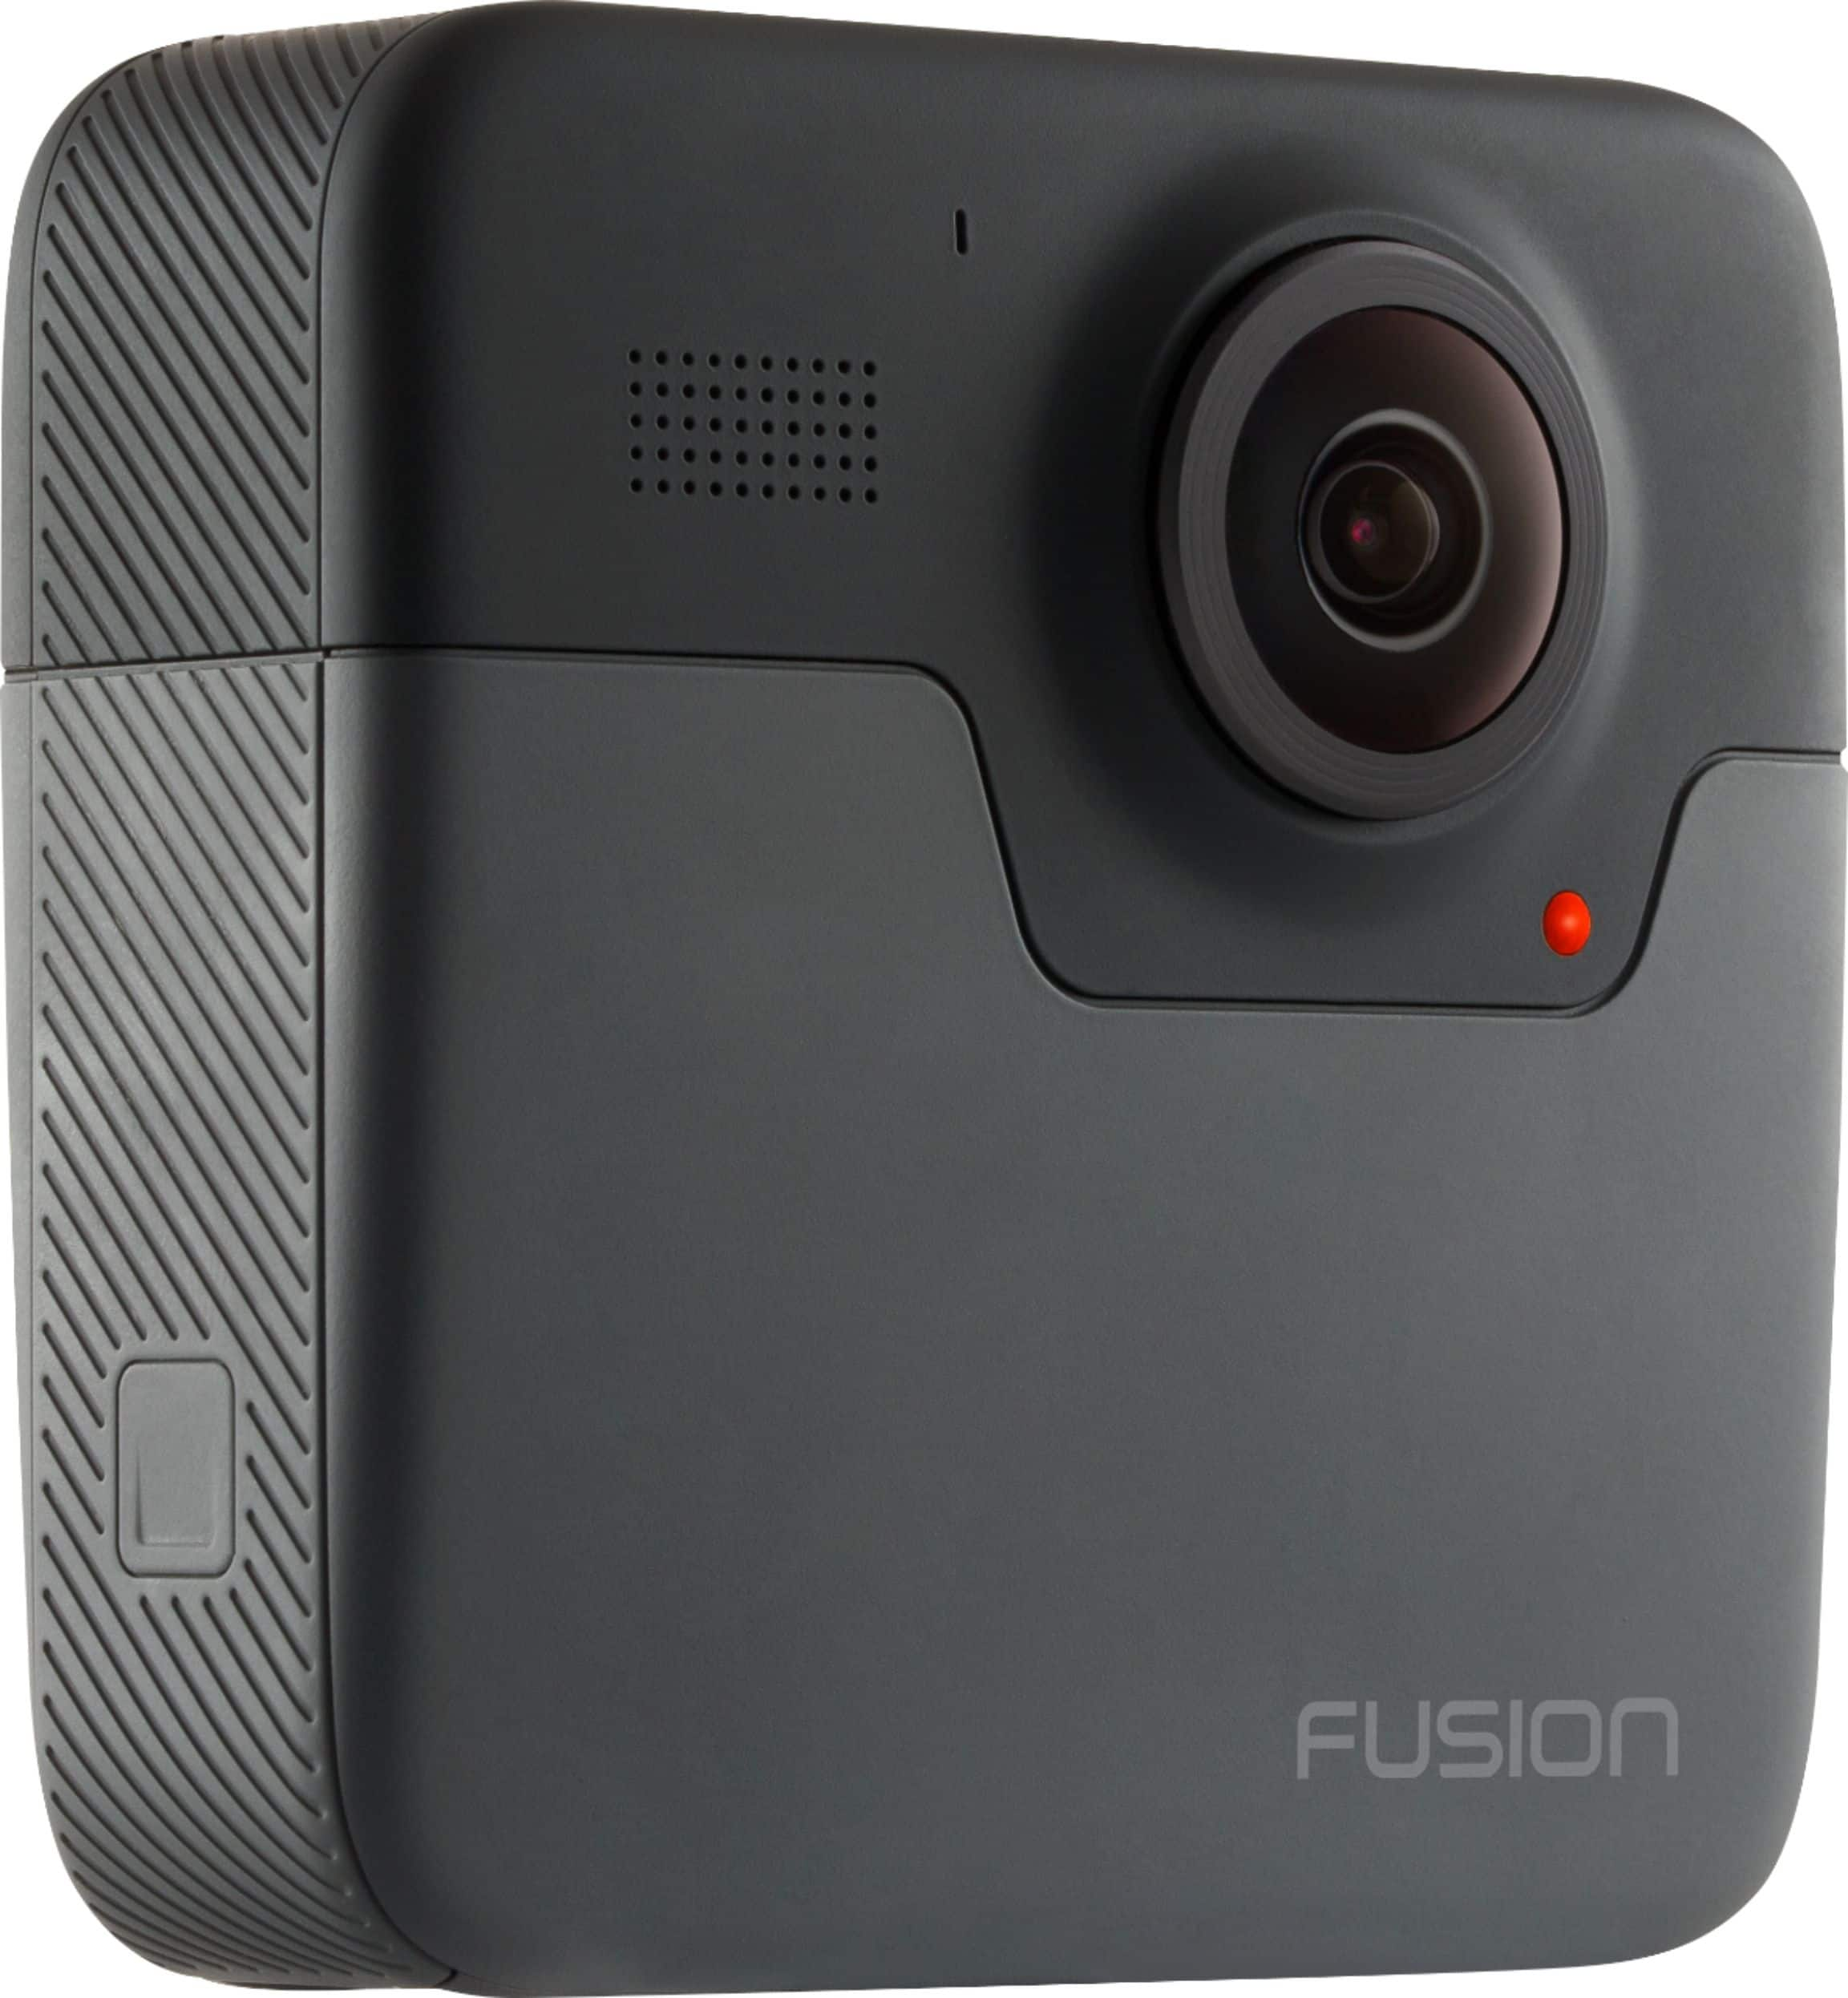 GoPro - Fusion 360-Degree Digital Camera - Black - $300 50% off